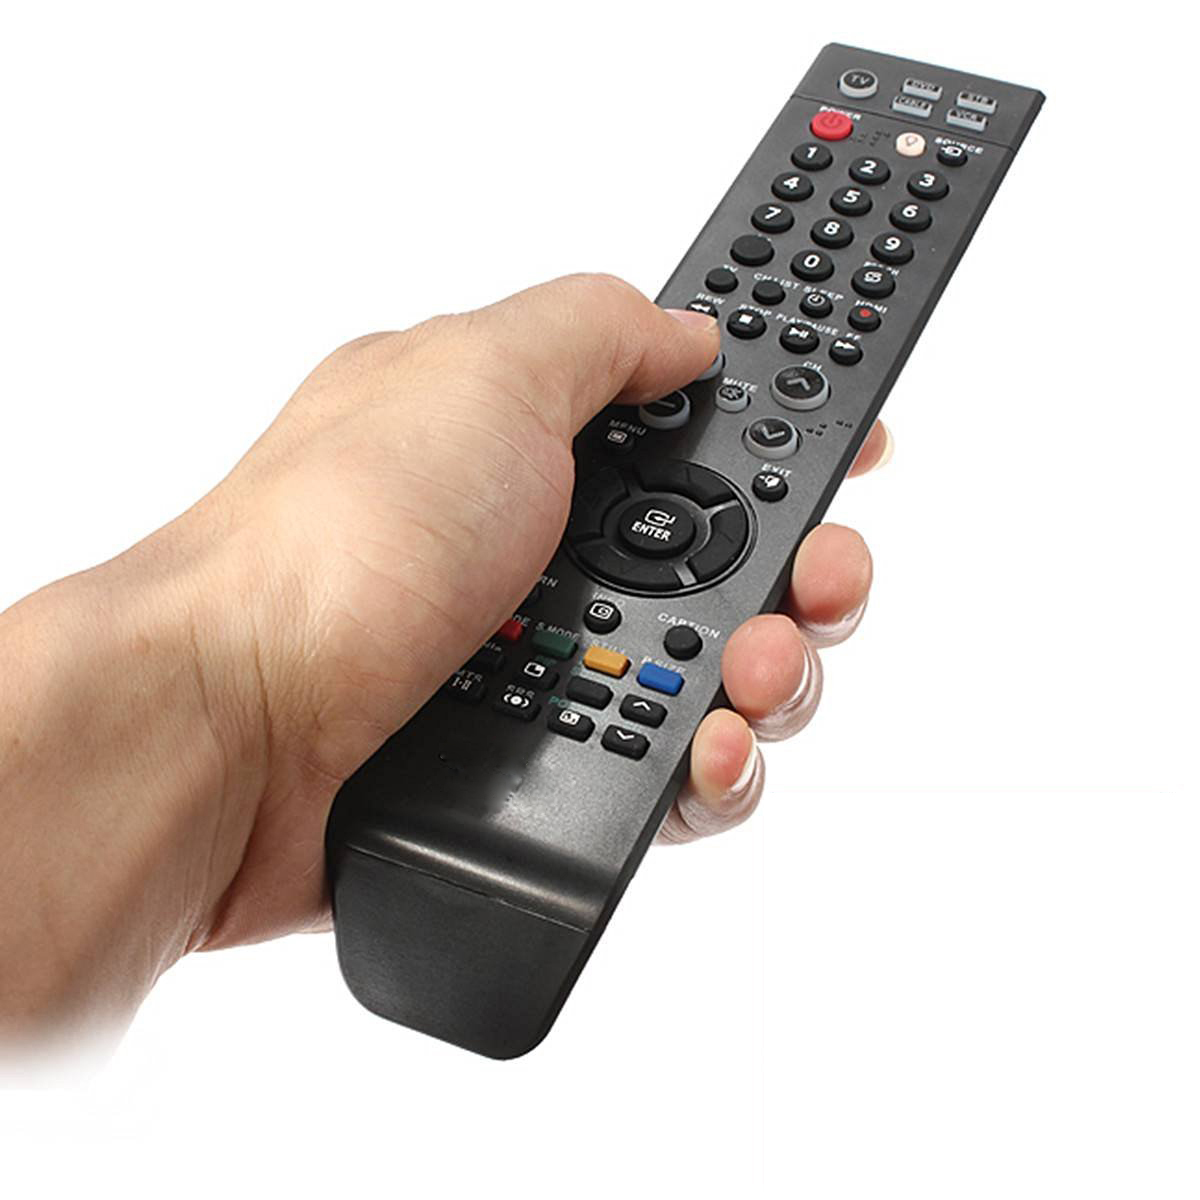 50 television deals aeProduct.getSubject()